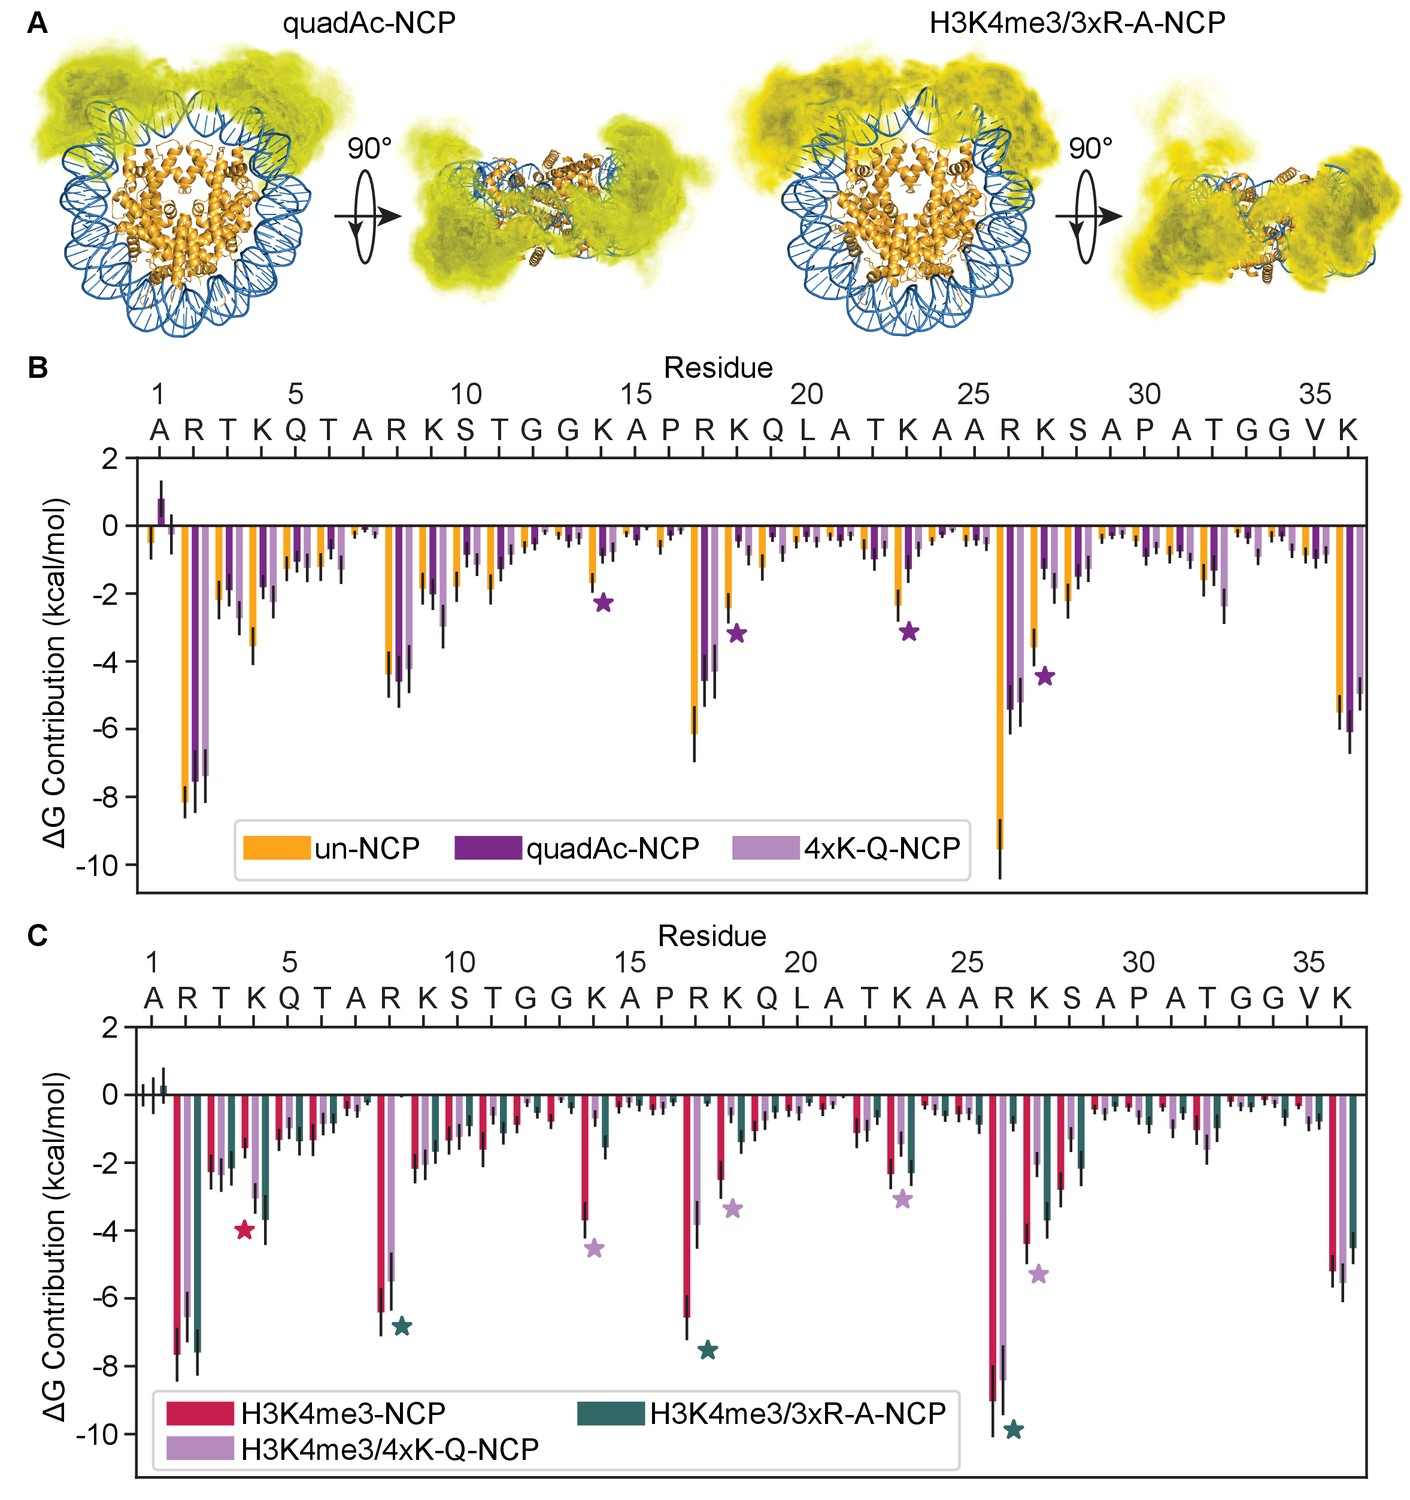 The conformation of the histone H3 tail inhibits association